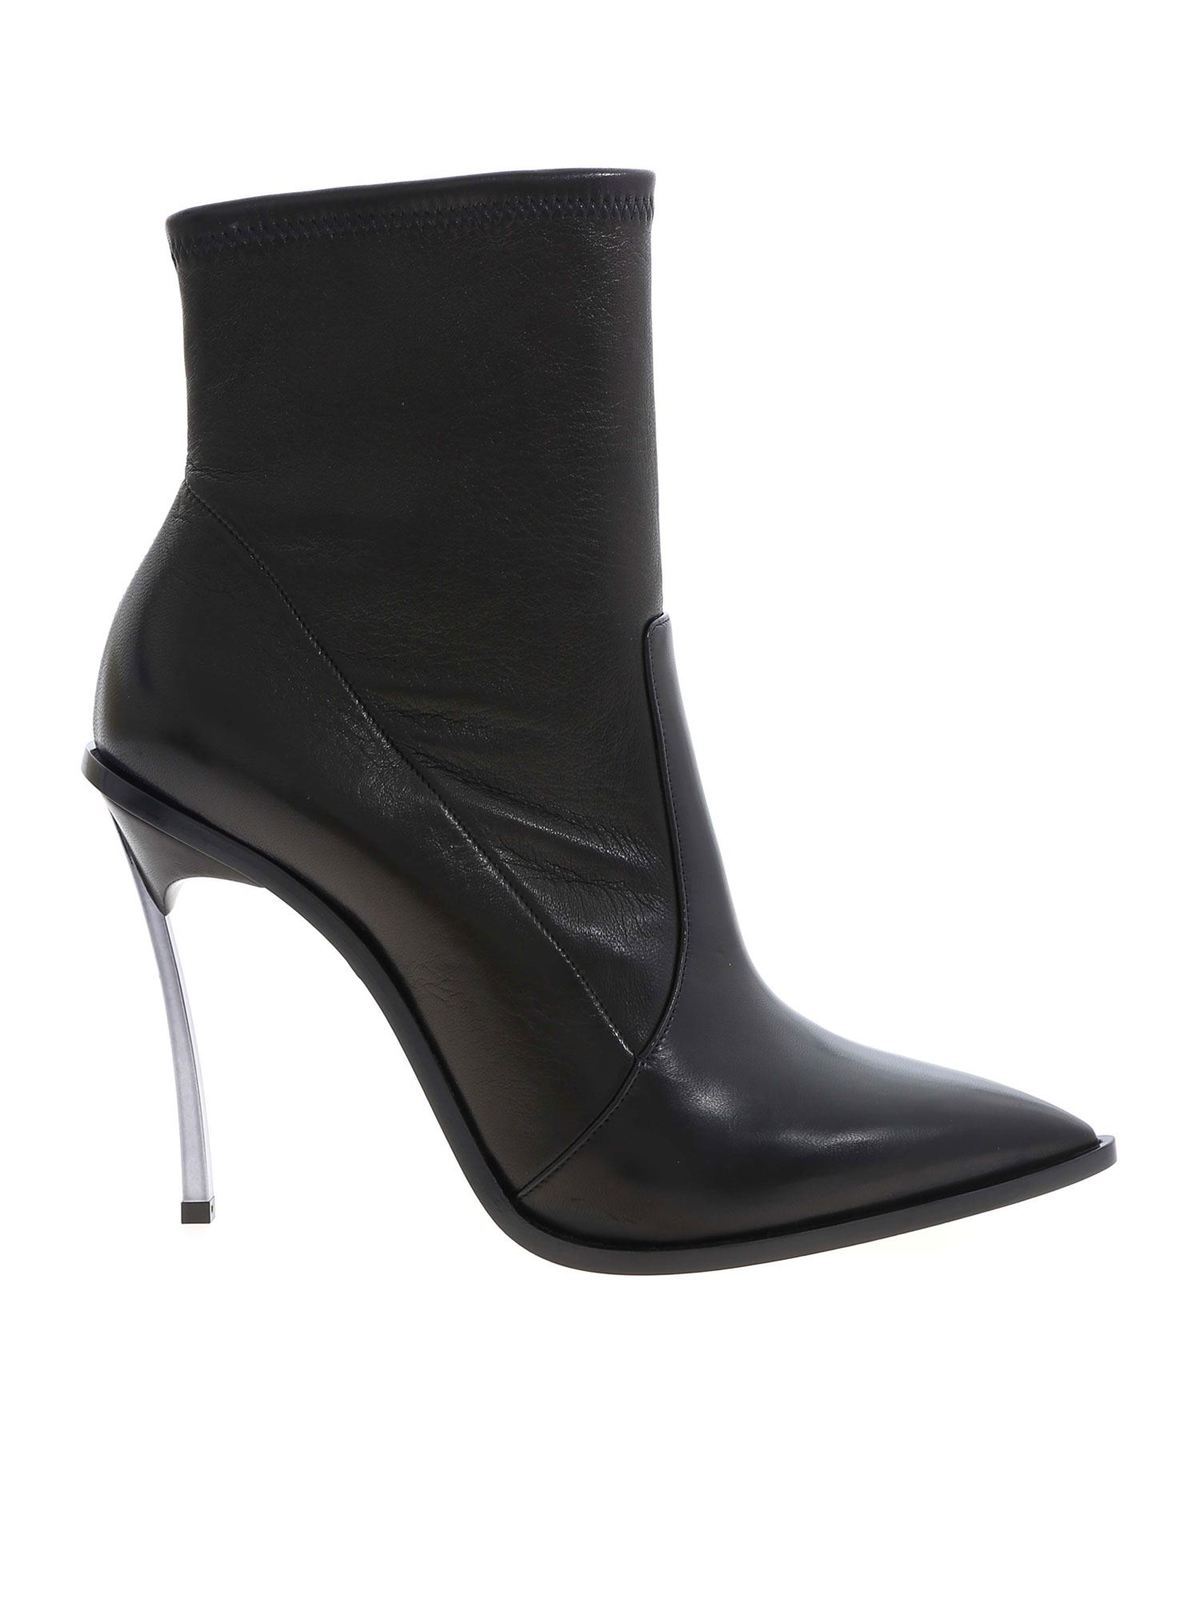 Casadei MAXI BLADE ANKLE BOOTS IN BLACK